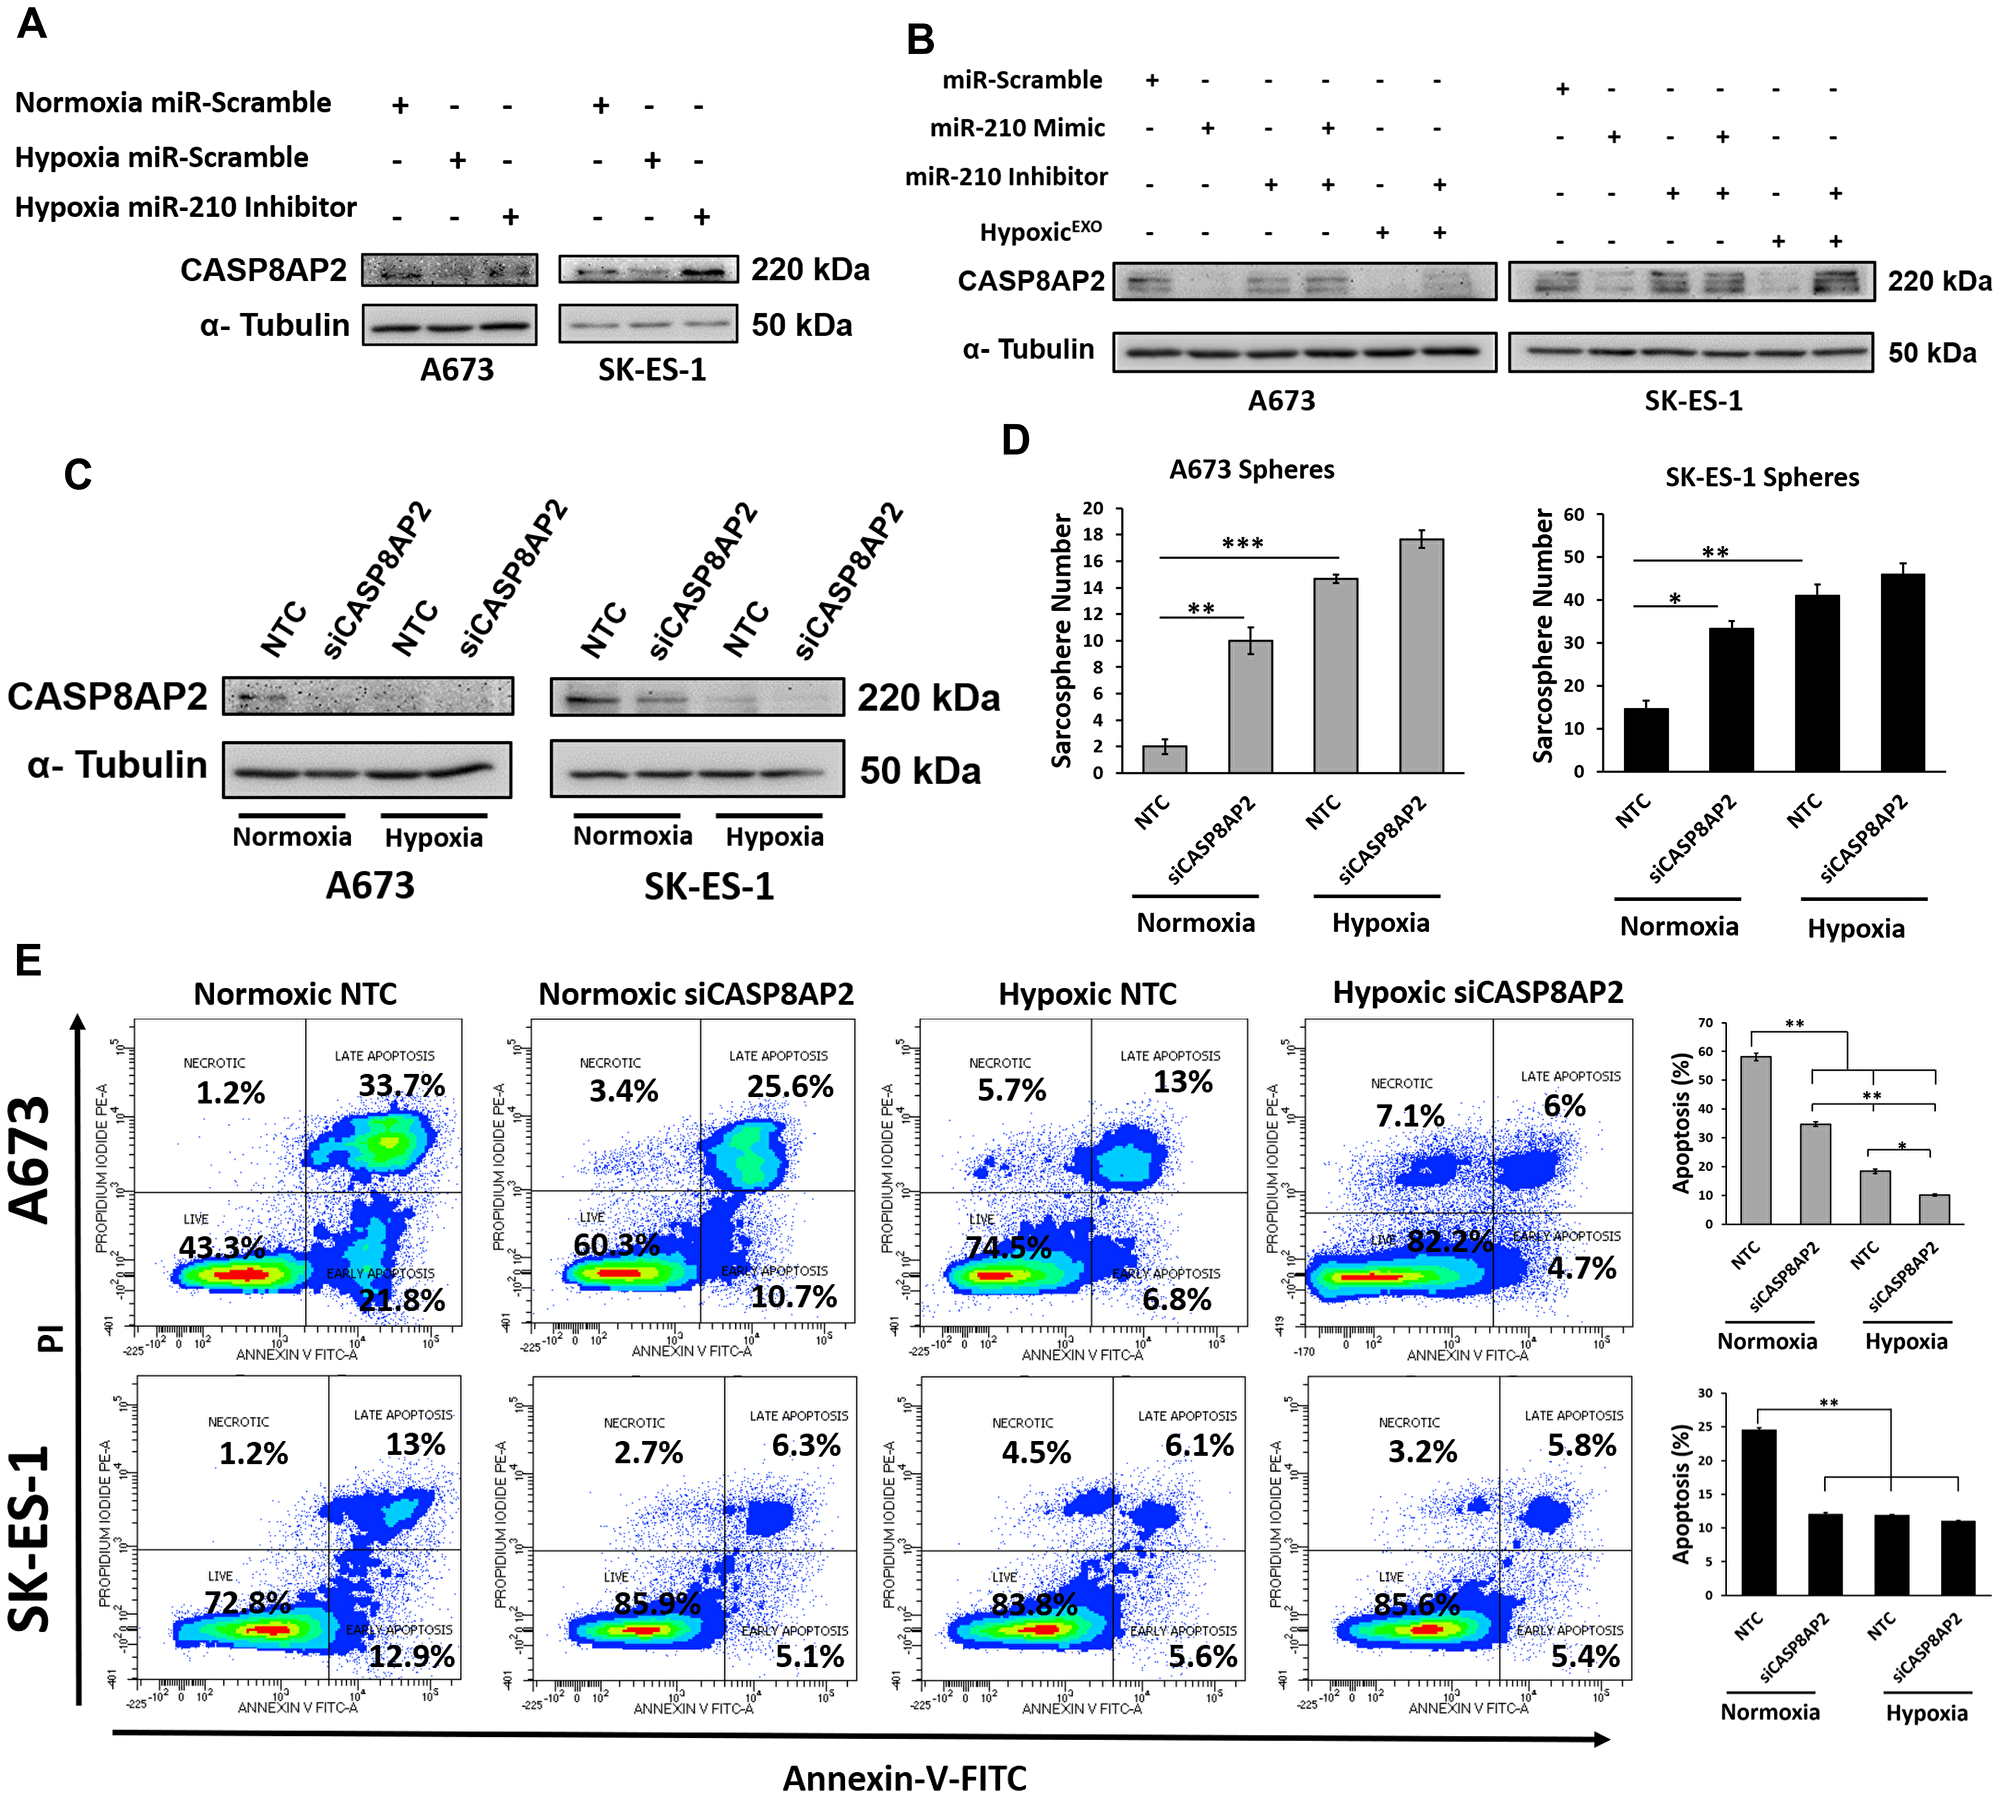 miR-210 silences the proapoptosis member CASP8AP2.